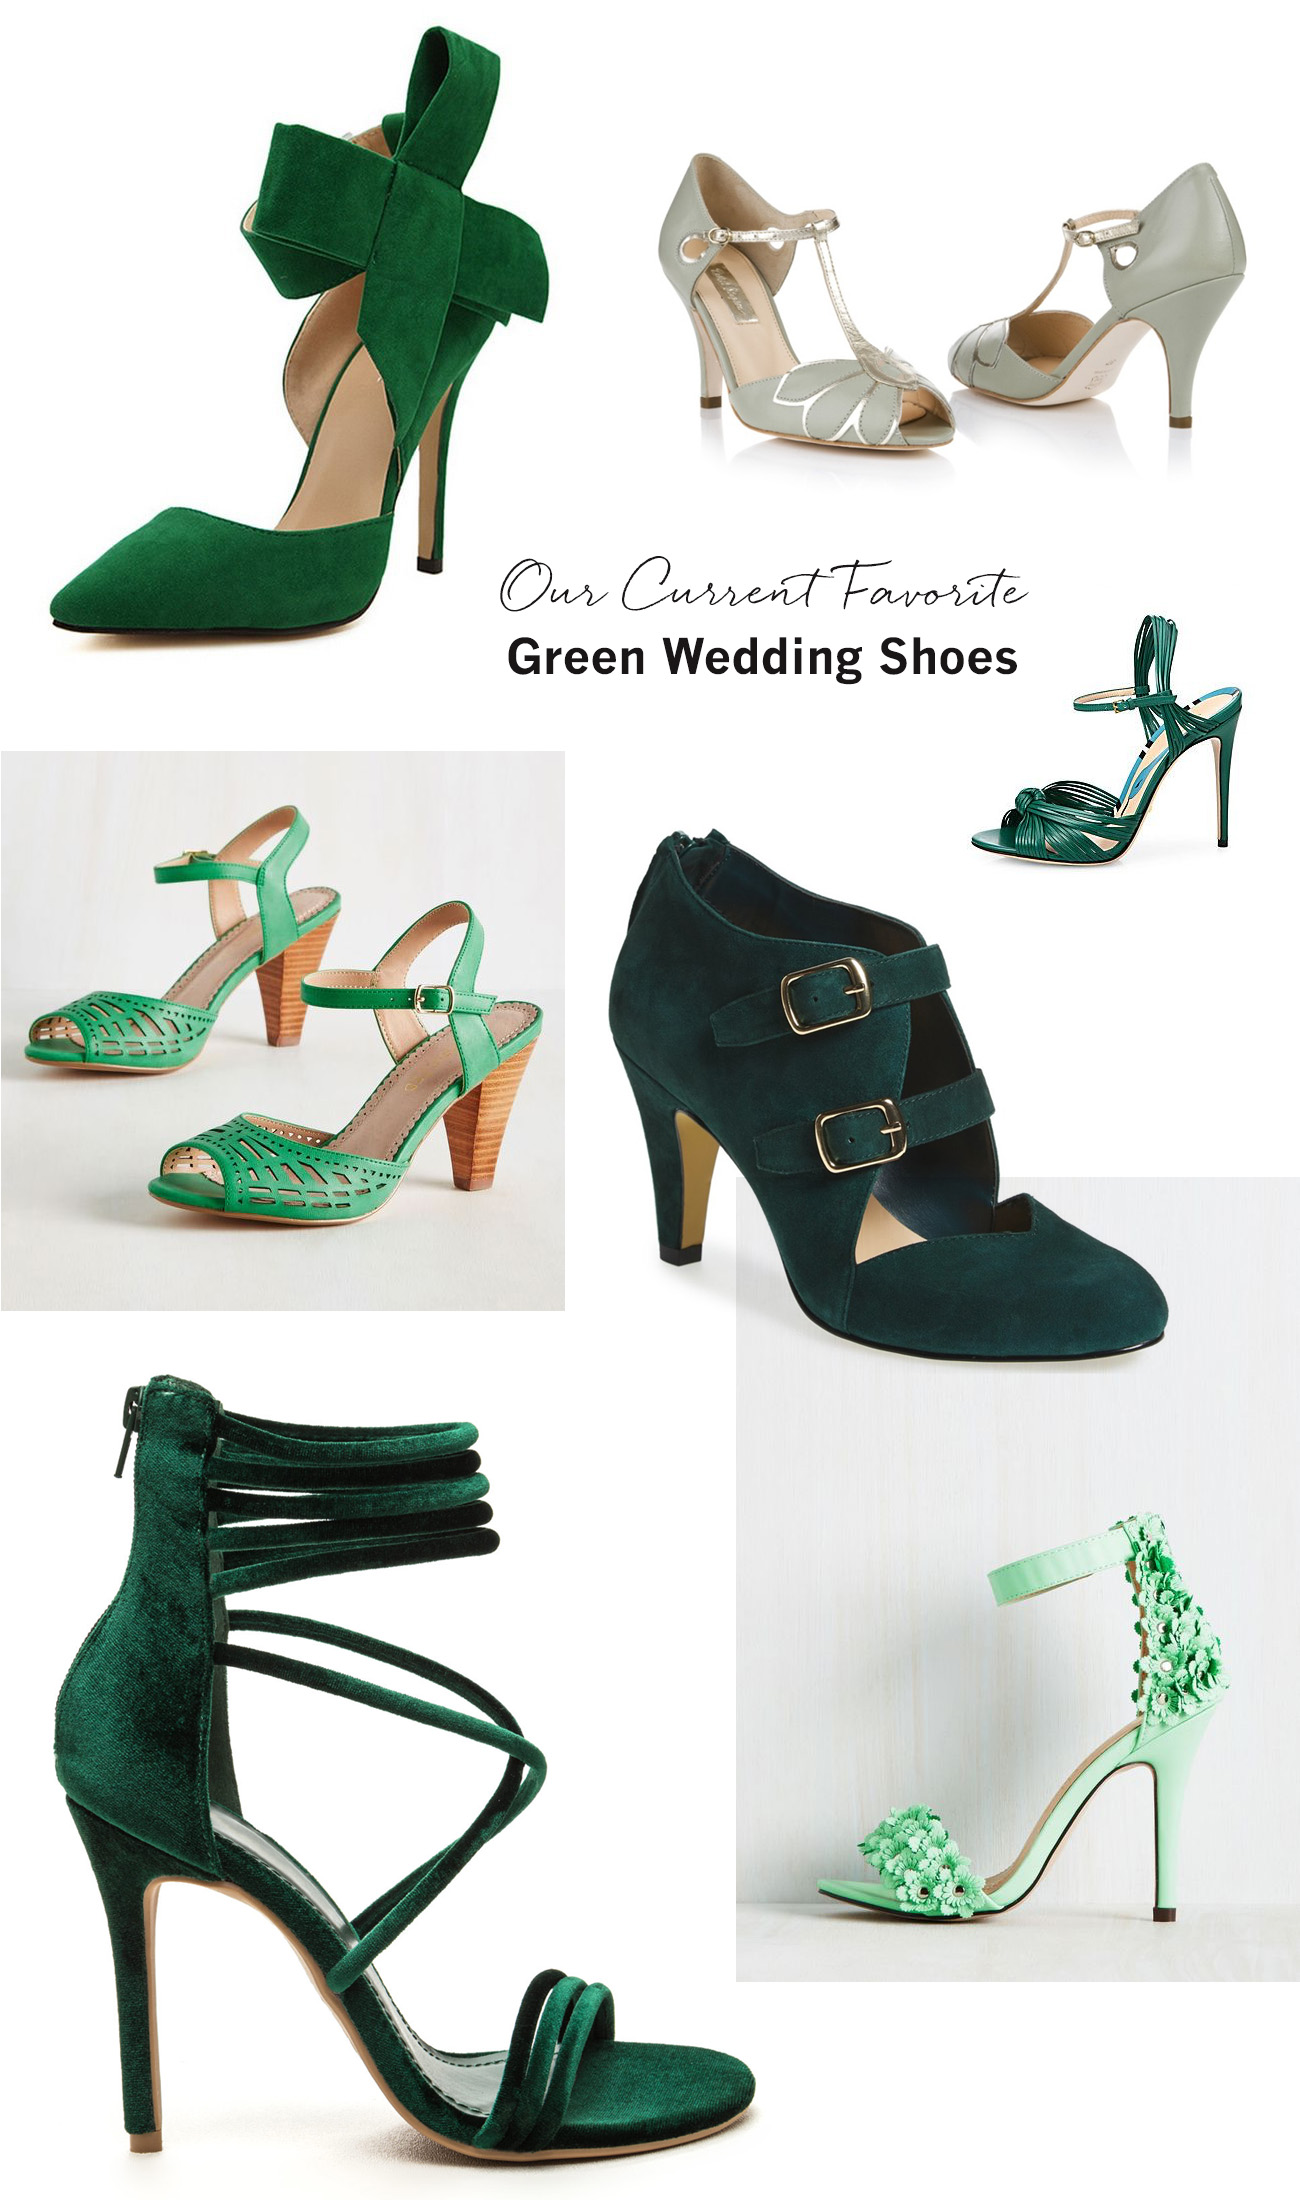 Favorite Green Wedding Shoes